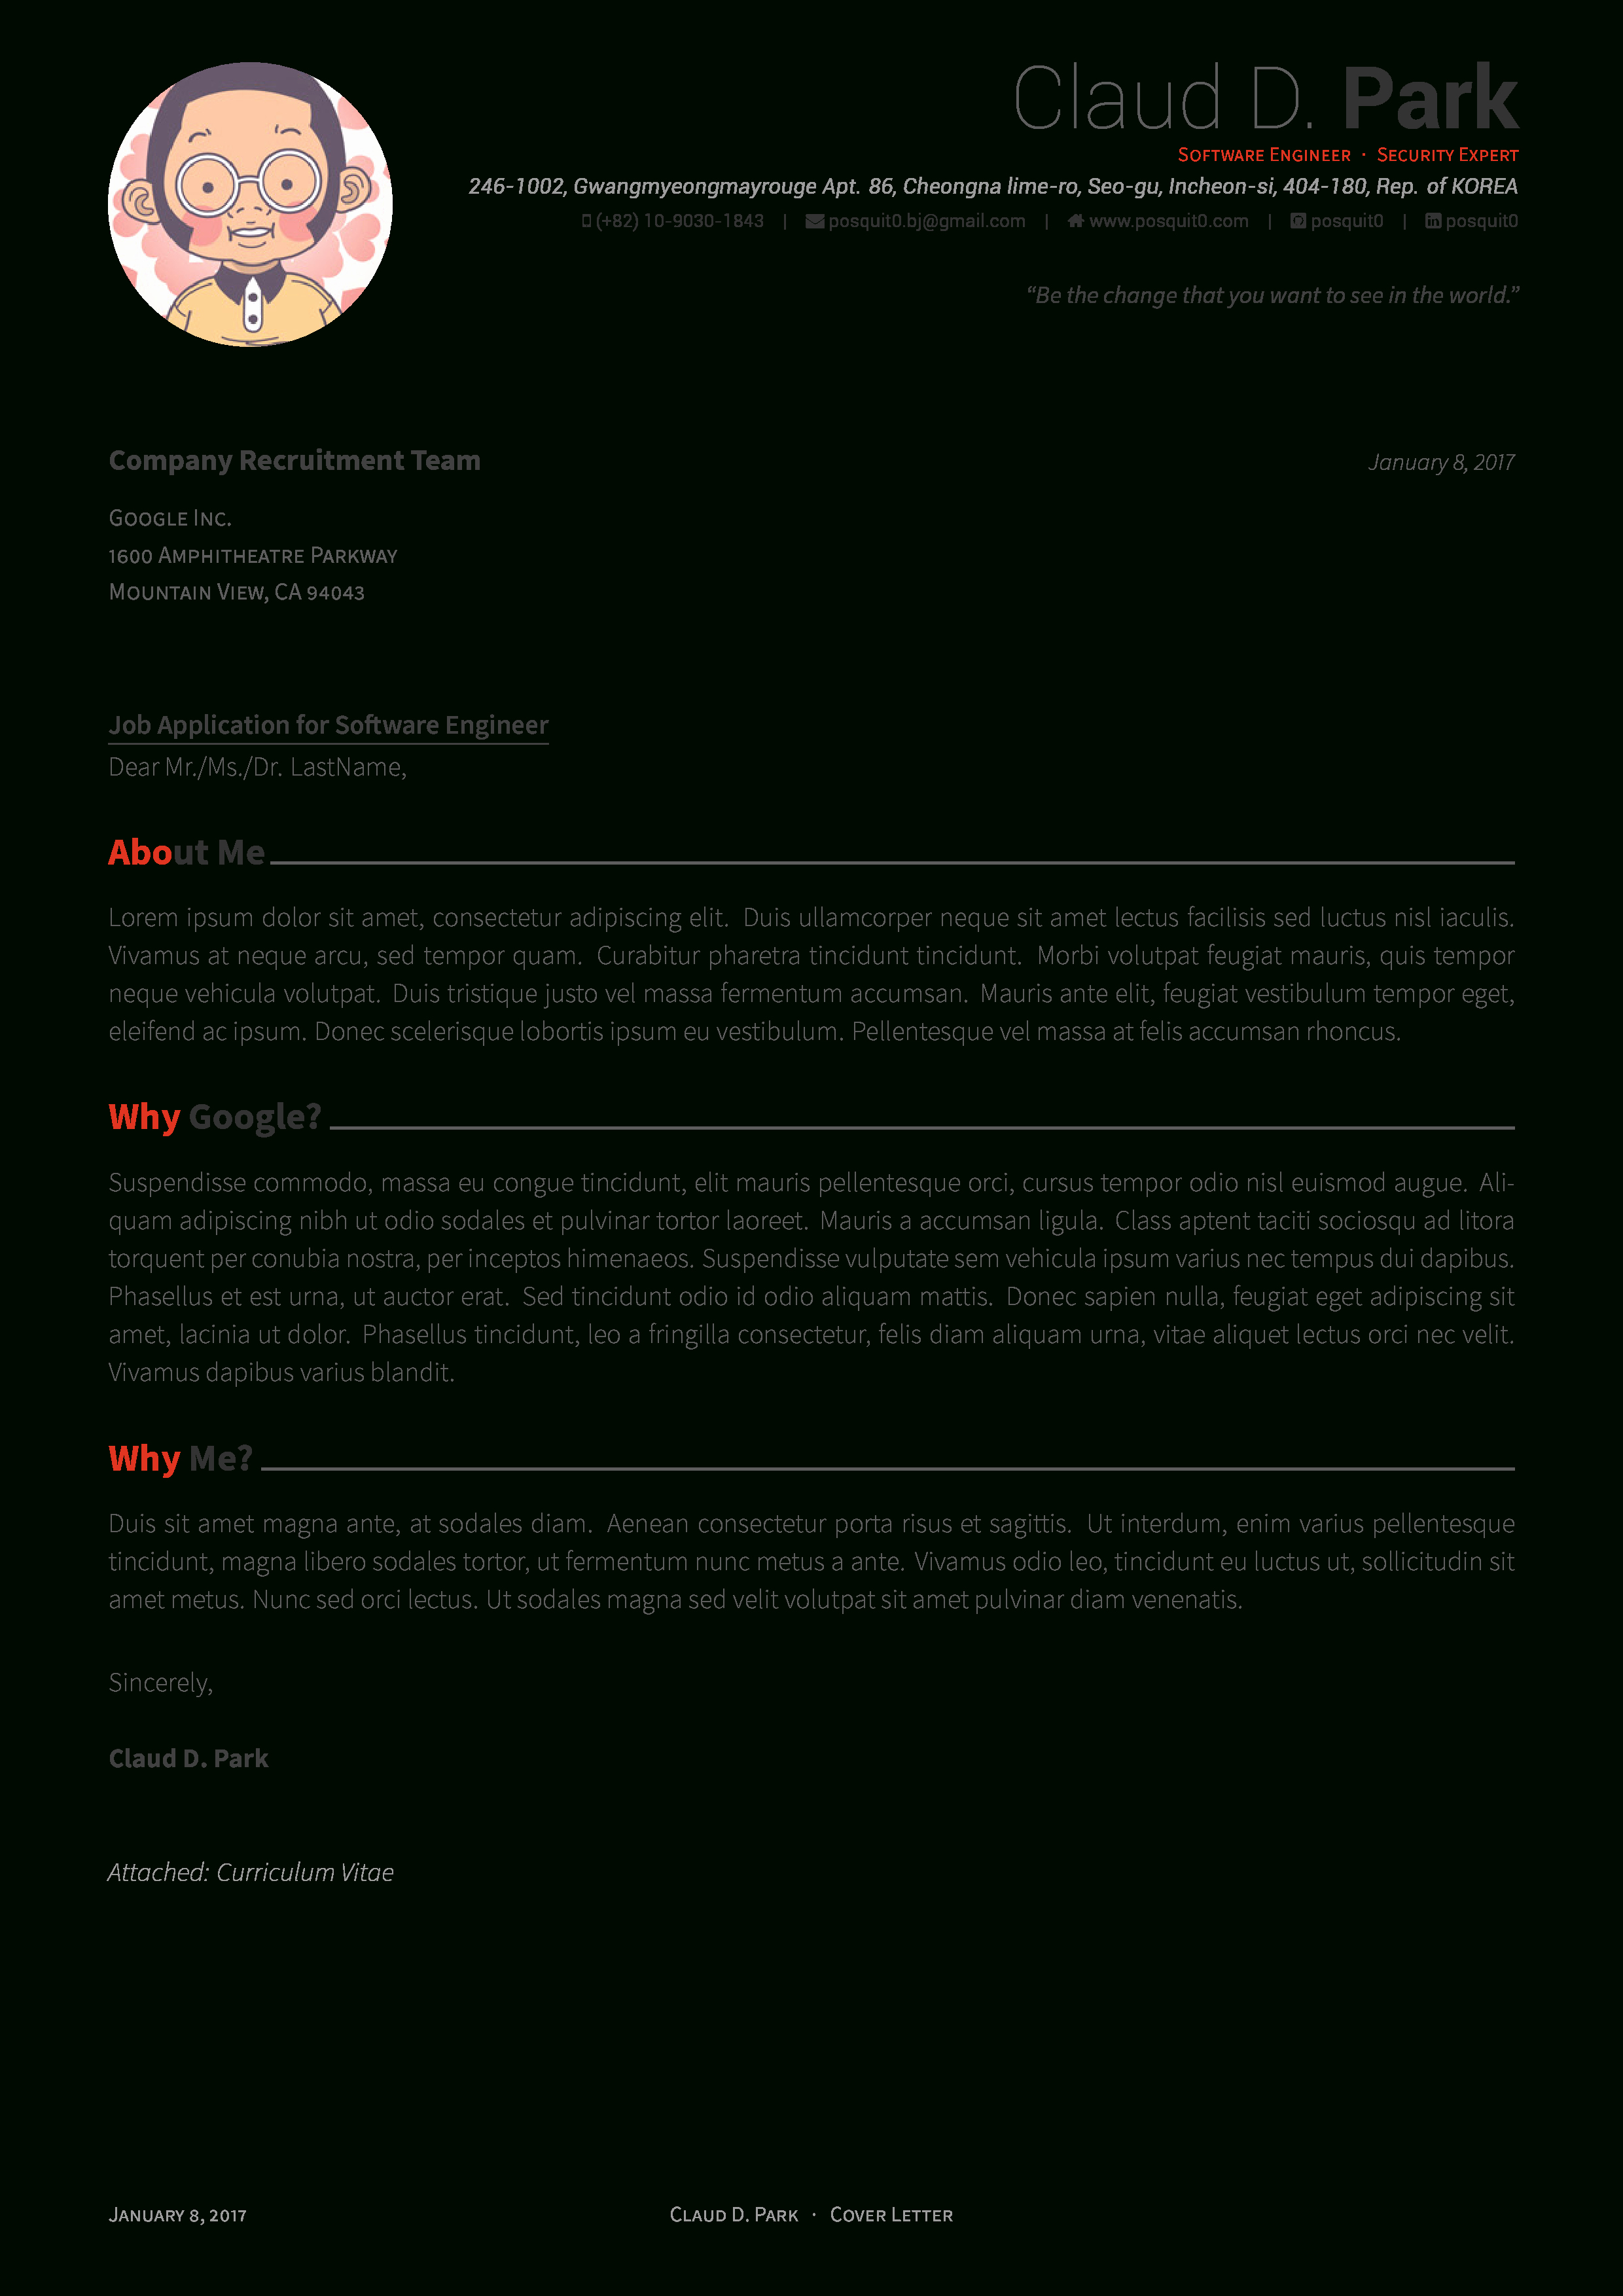 Cover Letter Latex Template Beautiful Latex Resume Template 2017